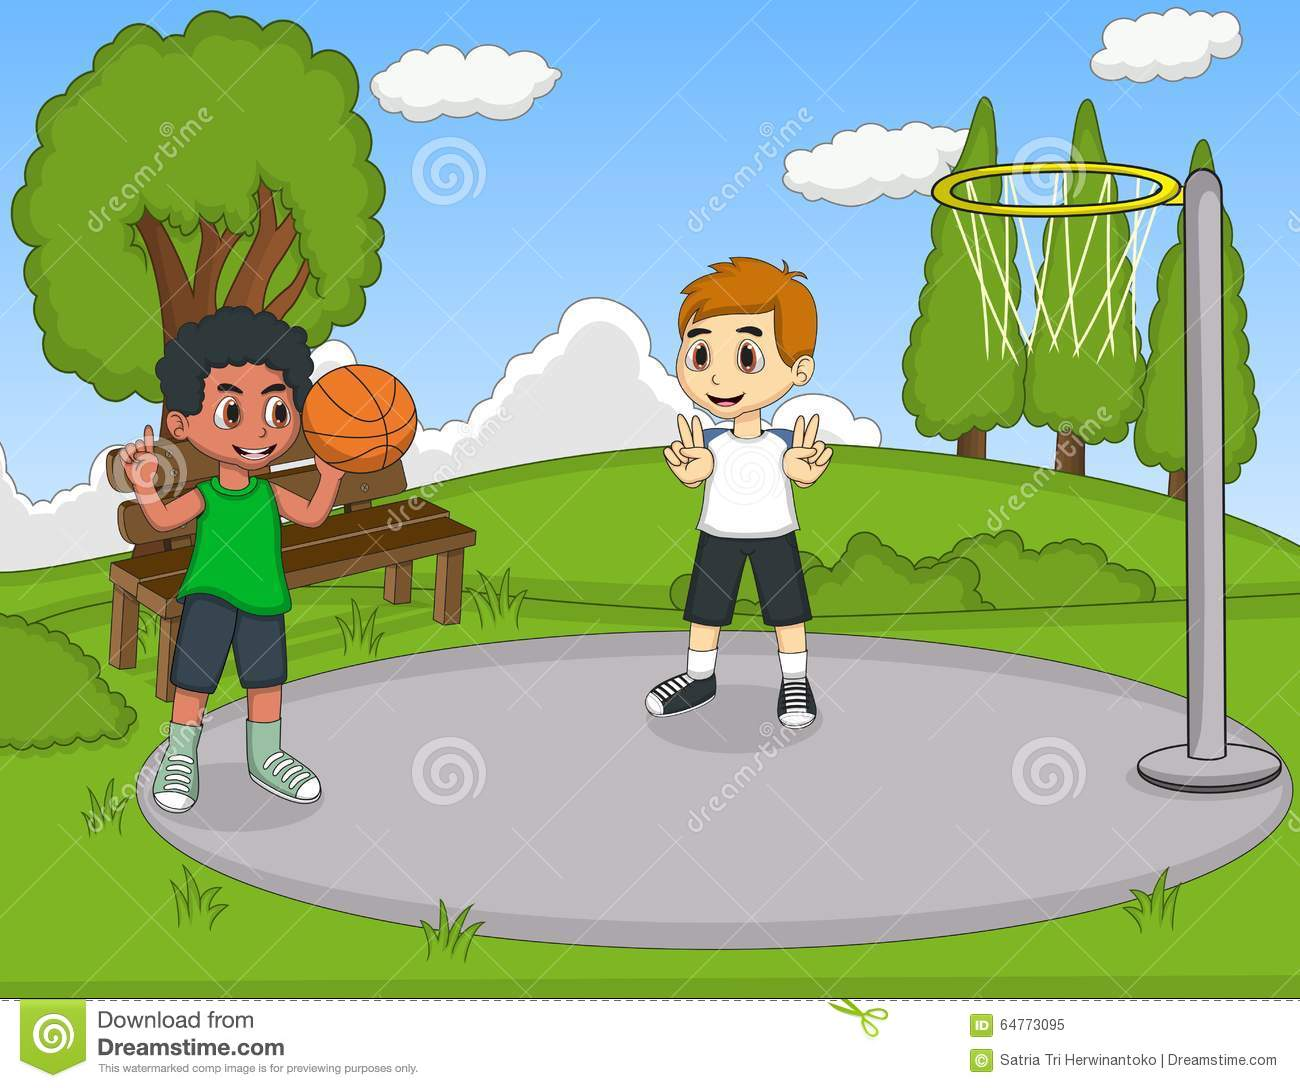 Kids Basketball Clipart Free